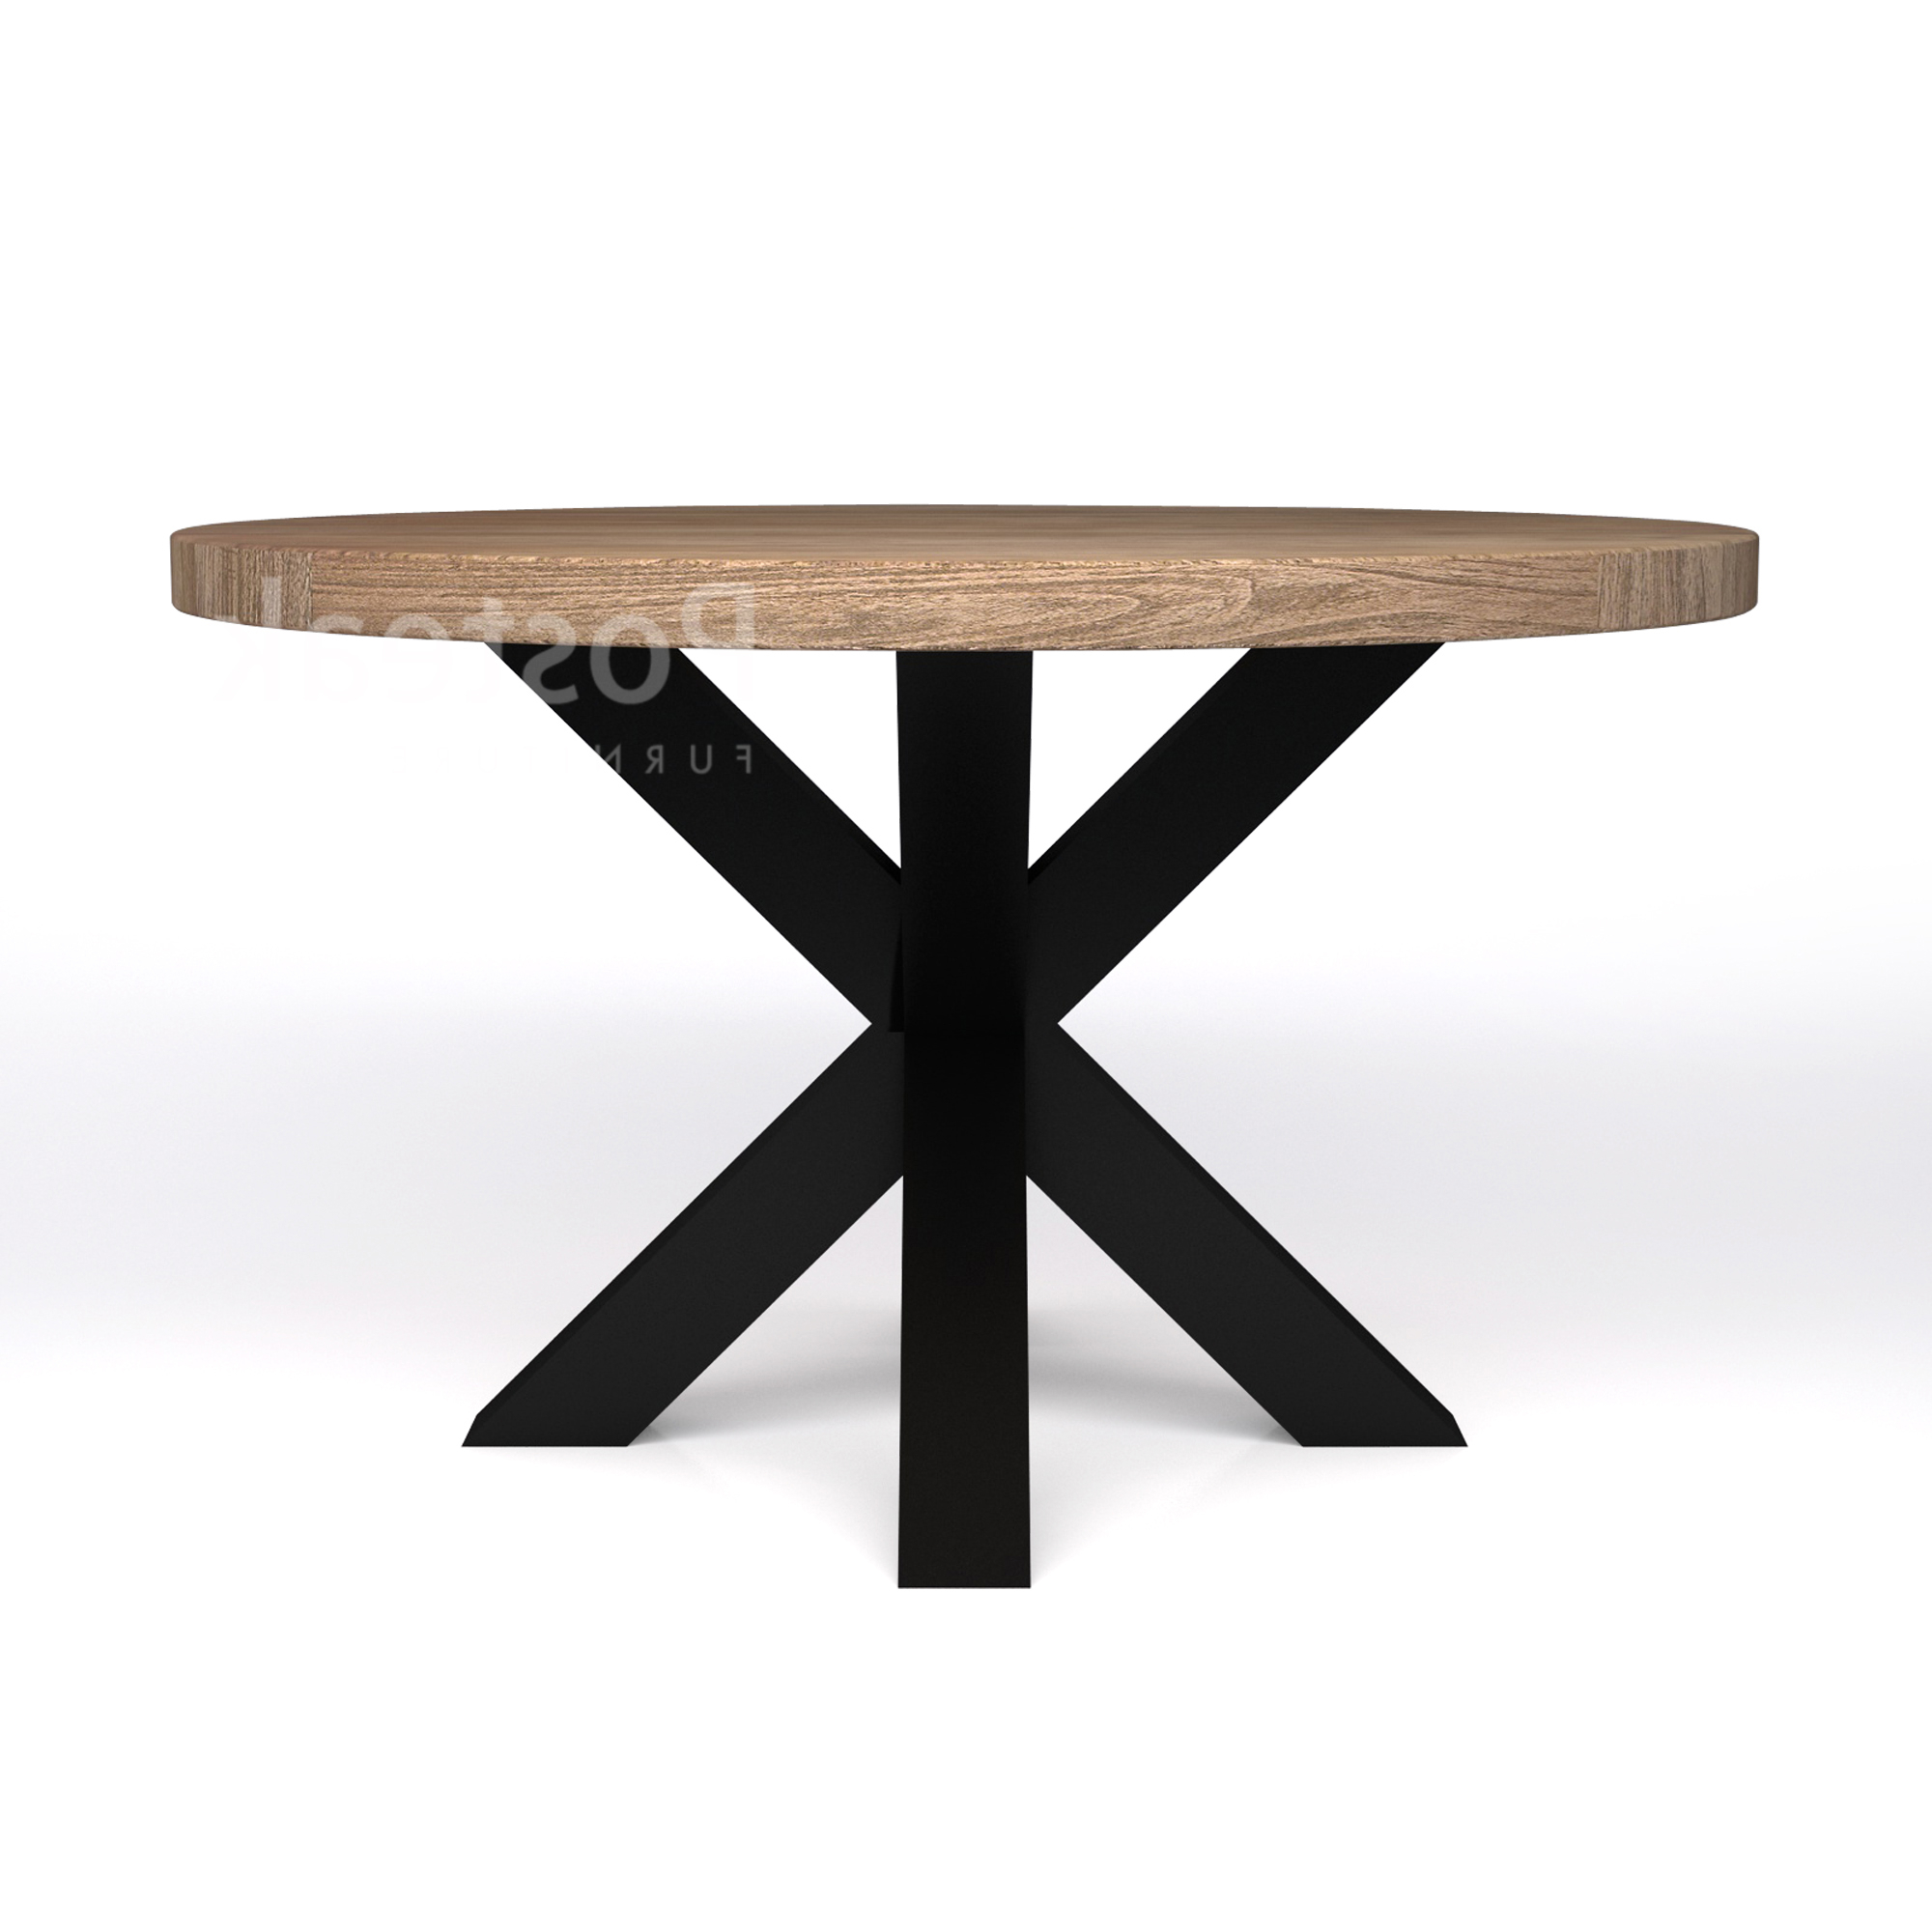 Iron Wood Dining Tables With Metal Legs Throughout Most Current Round Modern Dining Table – Iron Cross Legs (View 17 of 30)